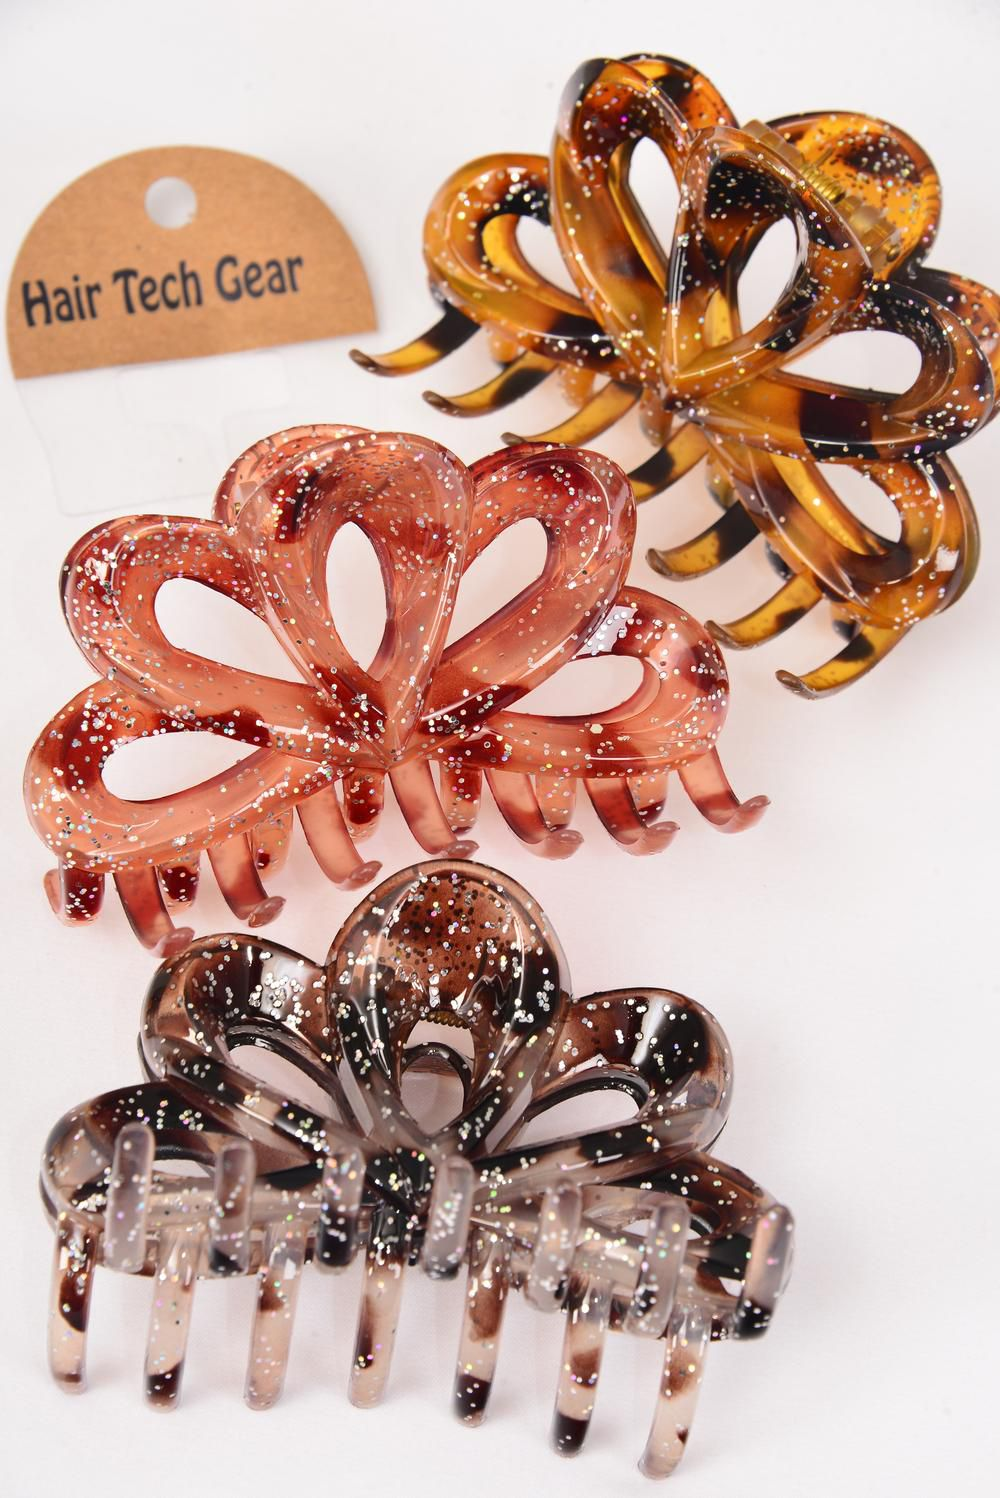 Jaw Clip Acrylic 10 cm Wide Leopard Glitters/DZ Size-10 cm Wide, Mix,4 Of each Color Asst,Hang Tag & OPP bag & UPC Code